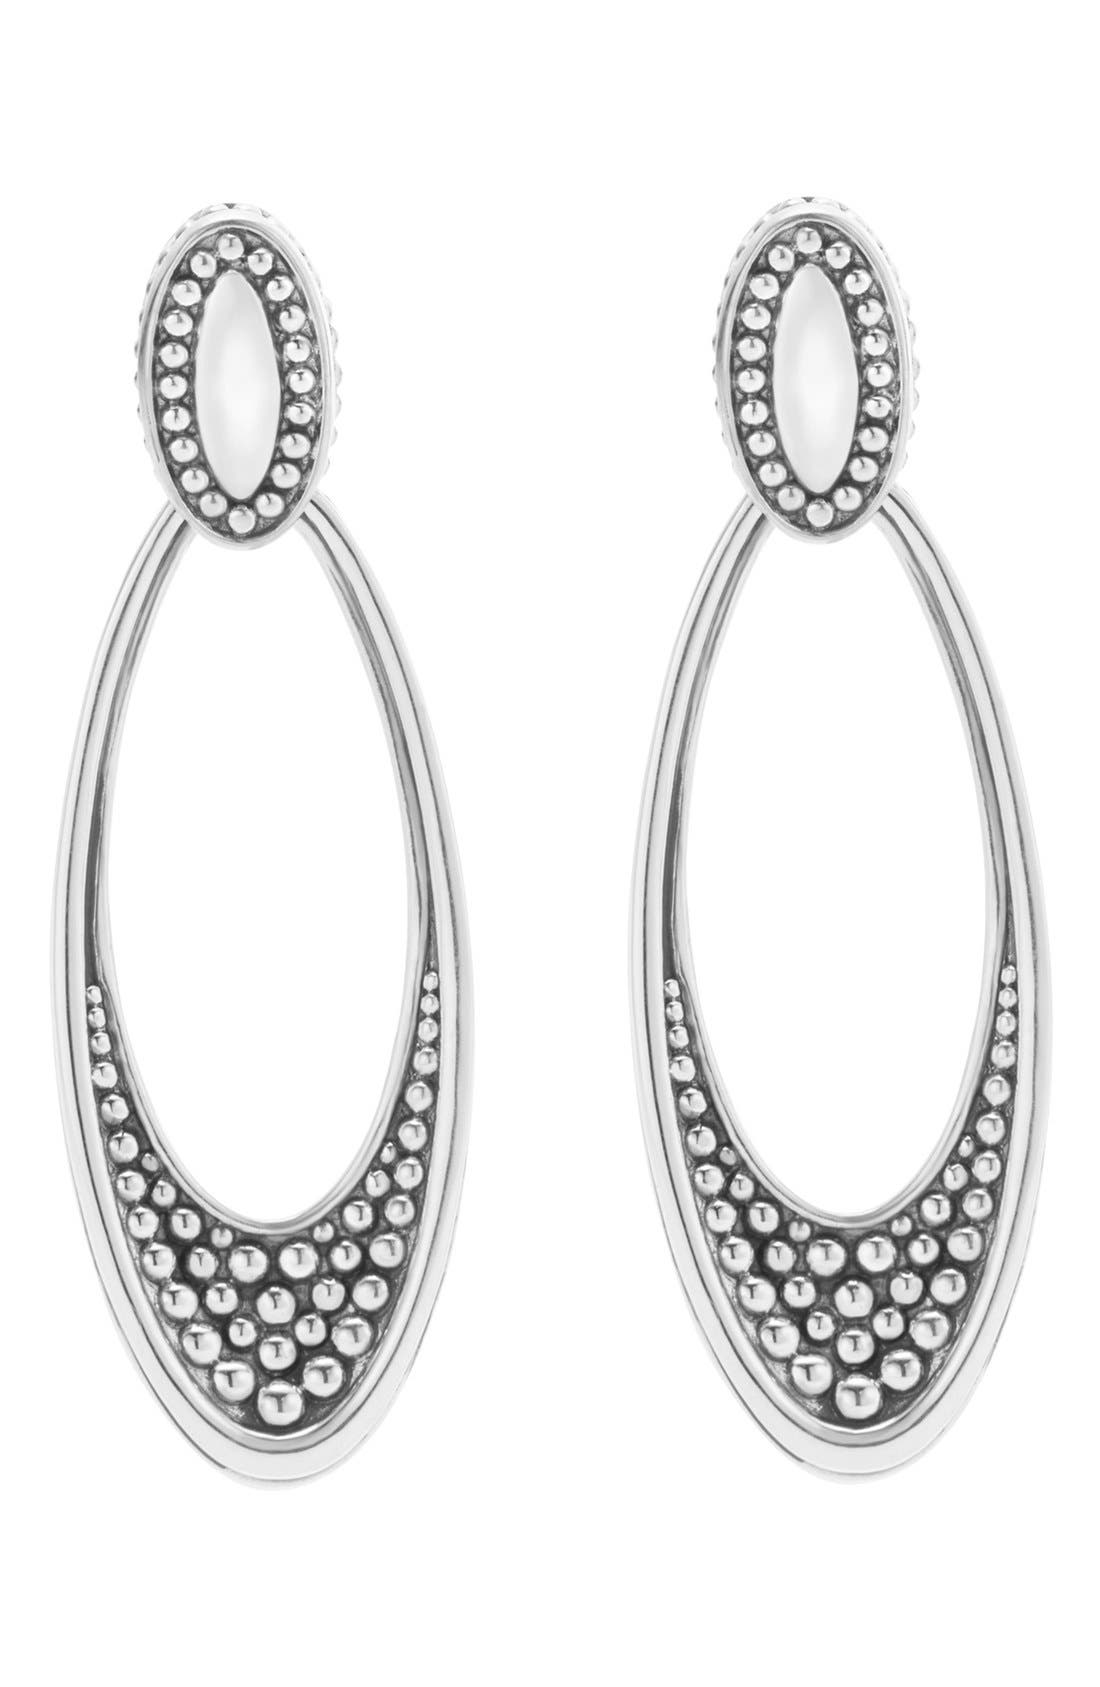 'Signature Caviar' Omega Drop Earrings,                             Main thumbnail 1, color,                             SILVER